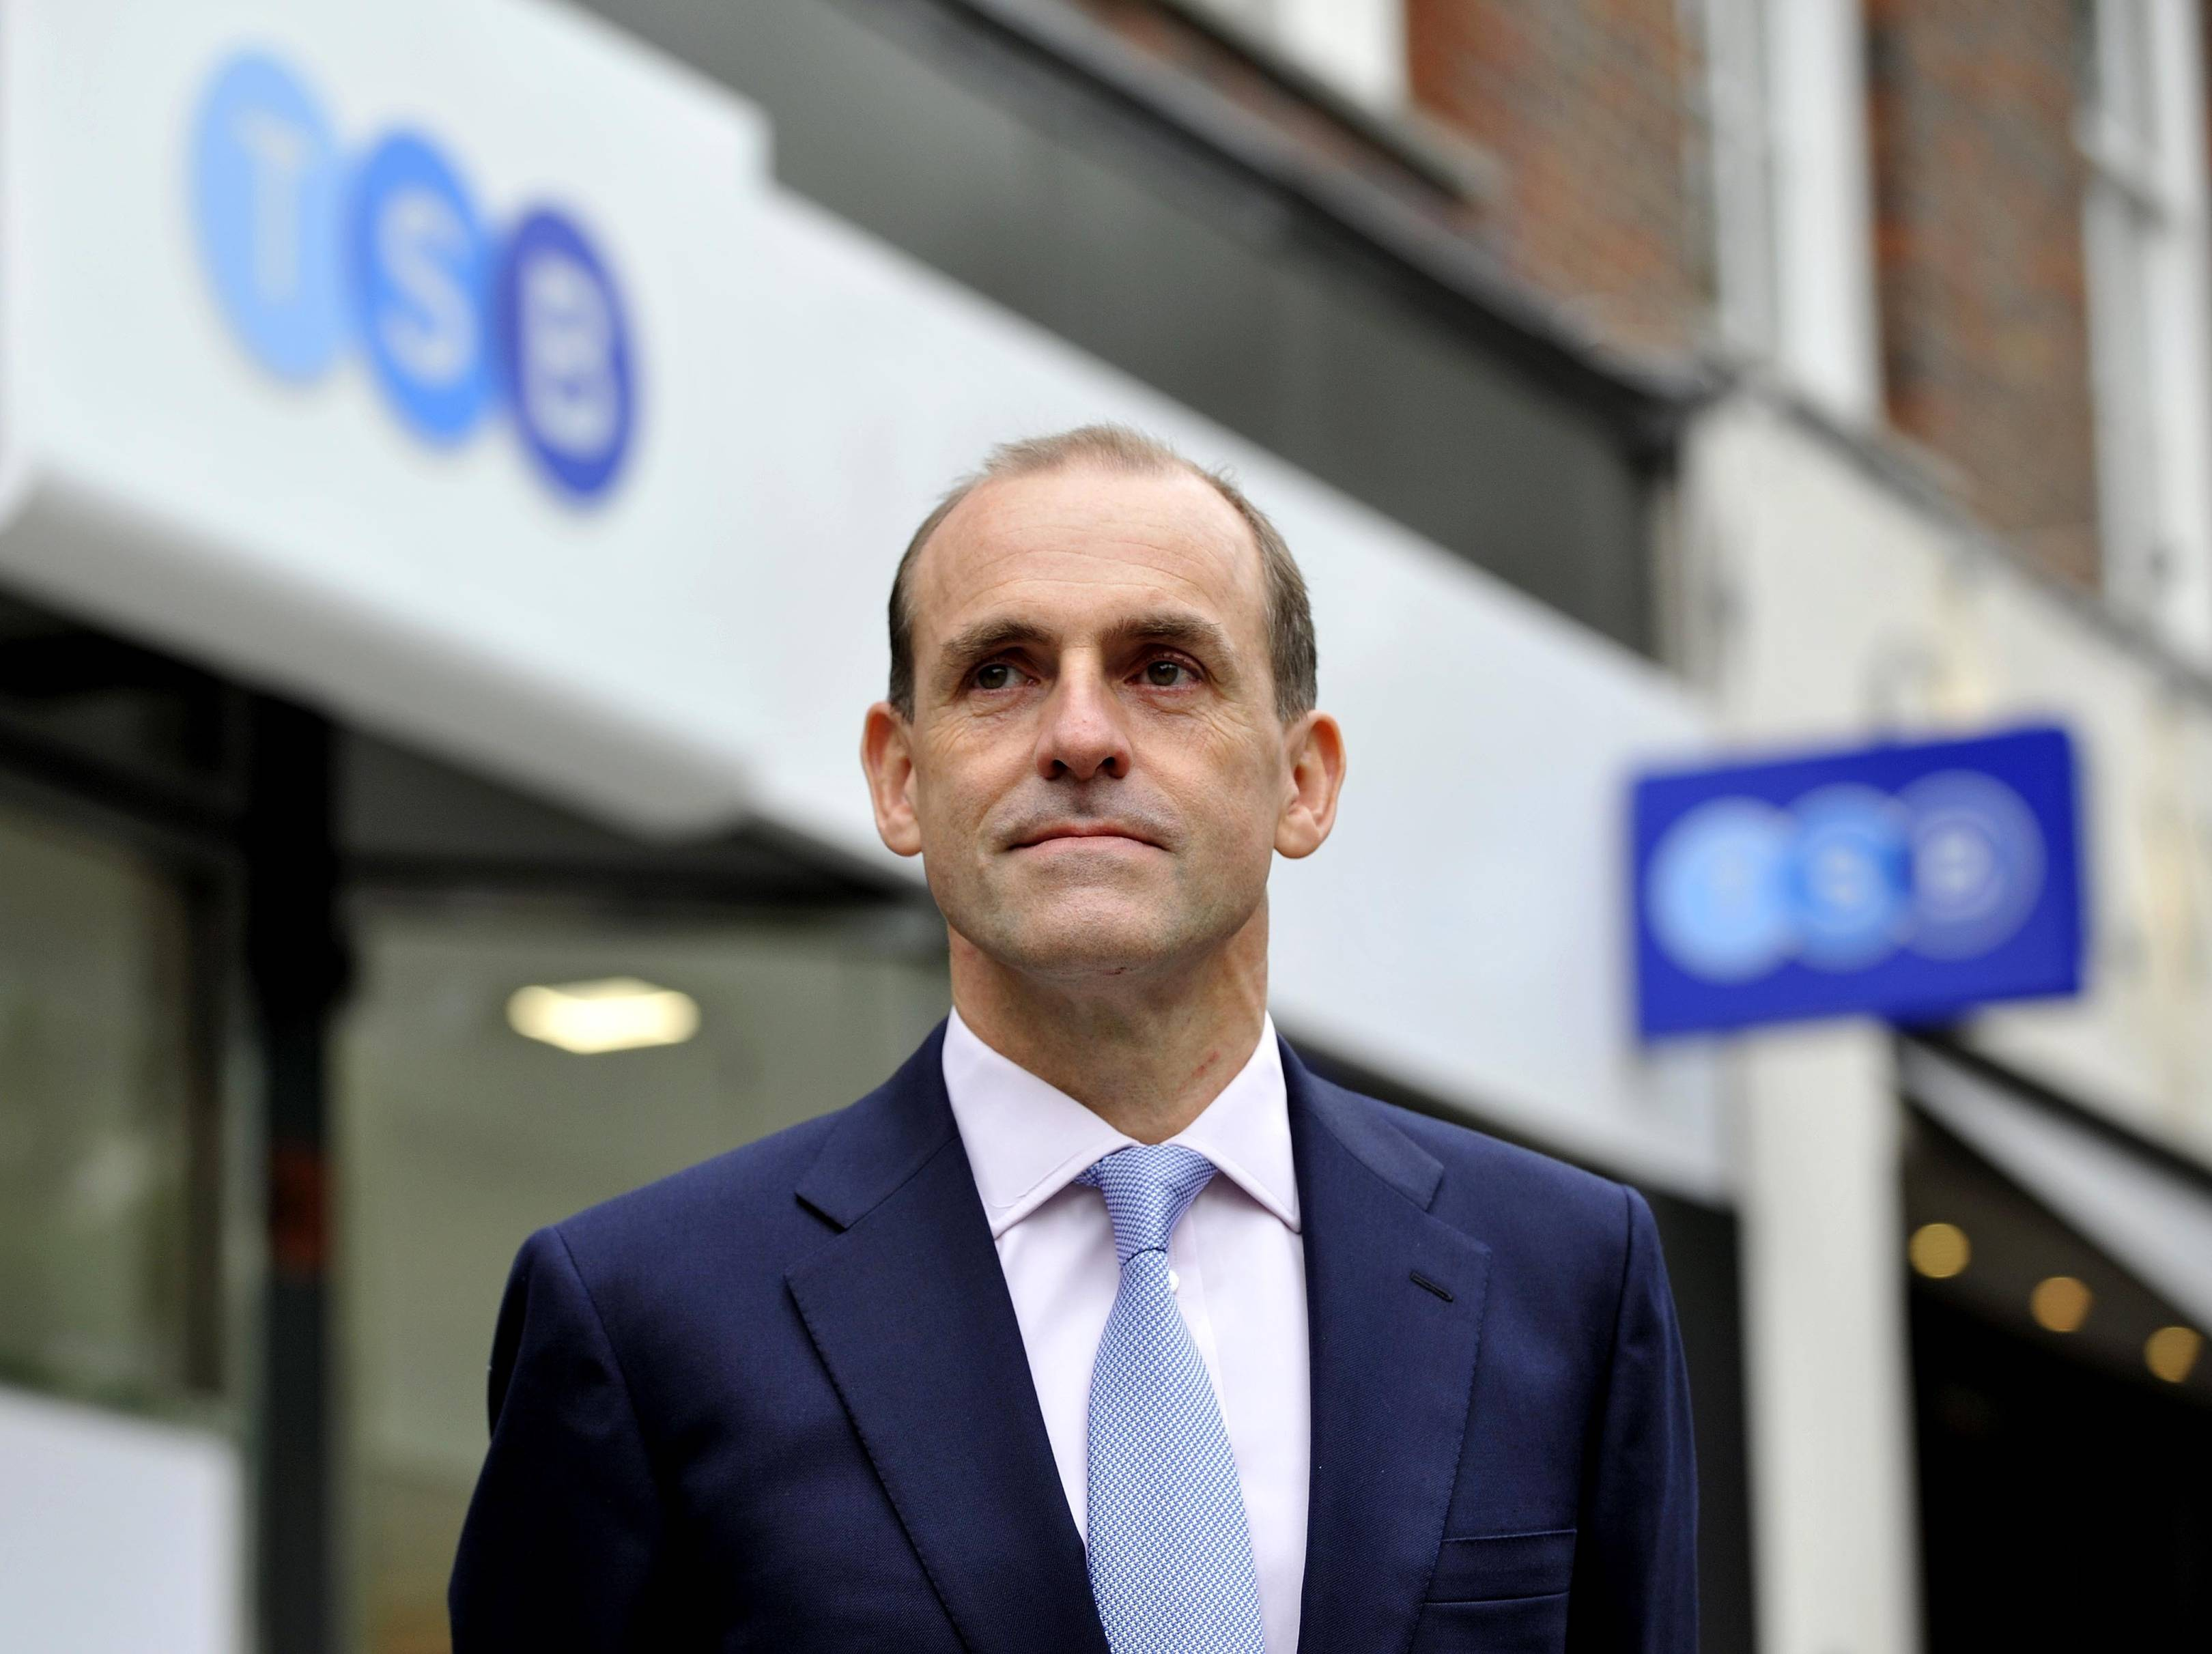 We're on our knees': Inside the totally avoidable TSB banking crisis